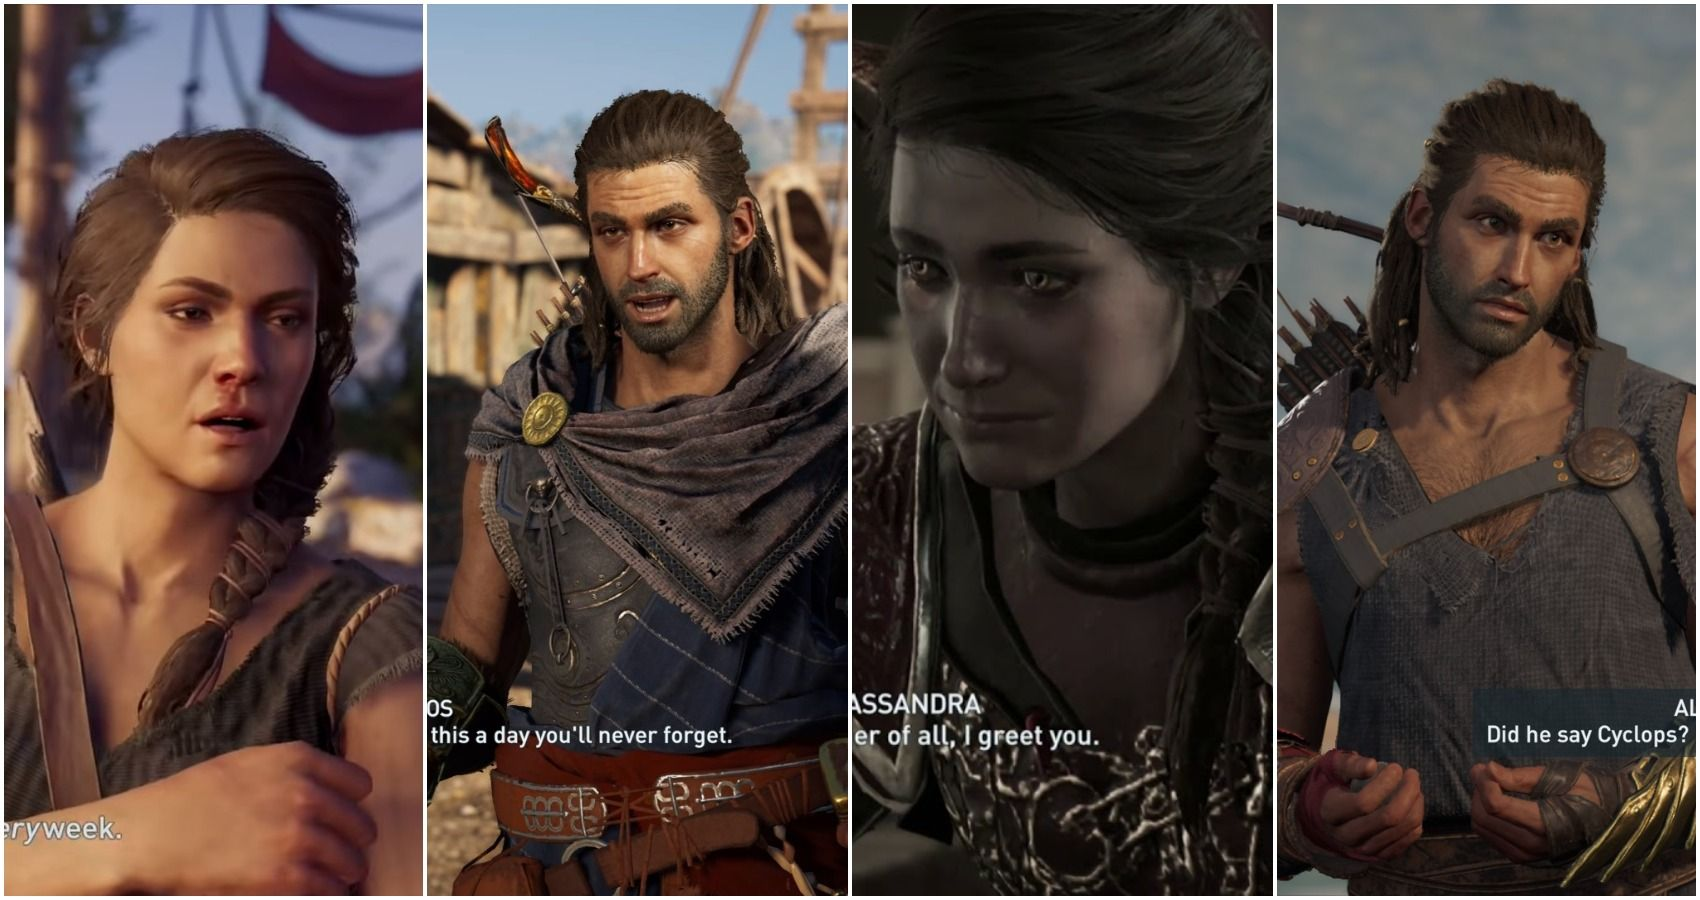 5 Lines In Assassin S Creed Odyssey Kassandra Delivered Best And